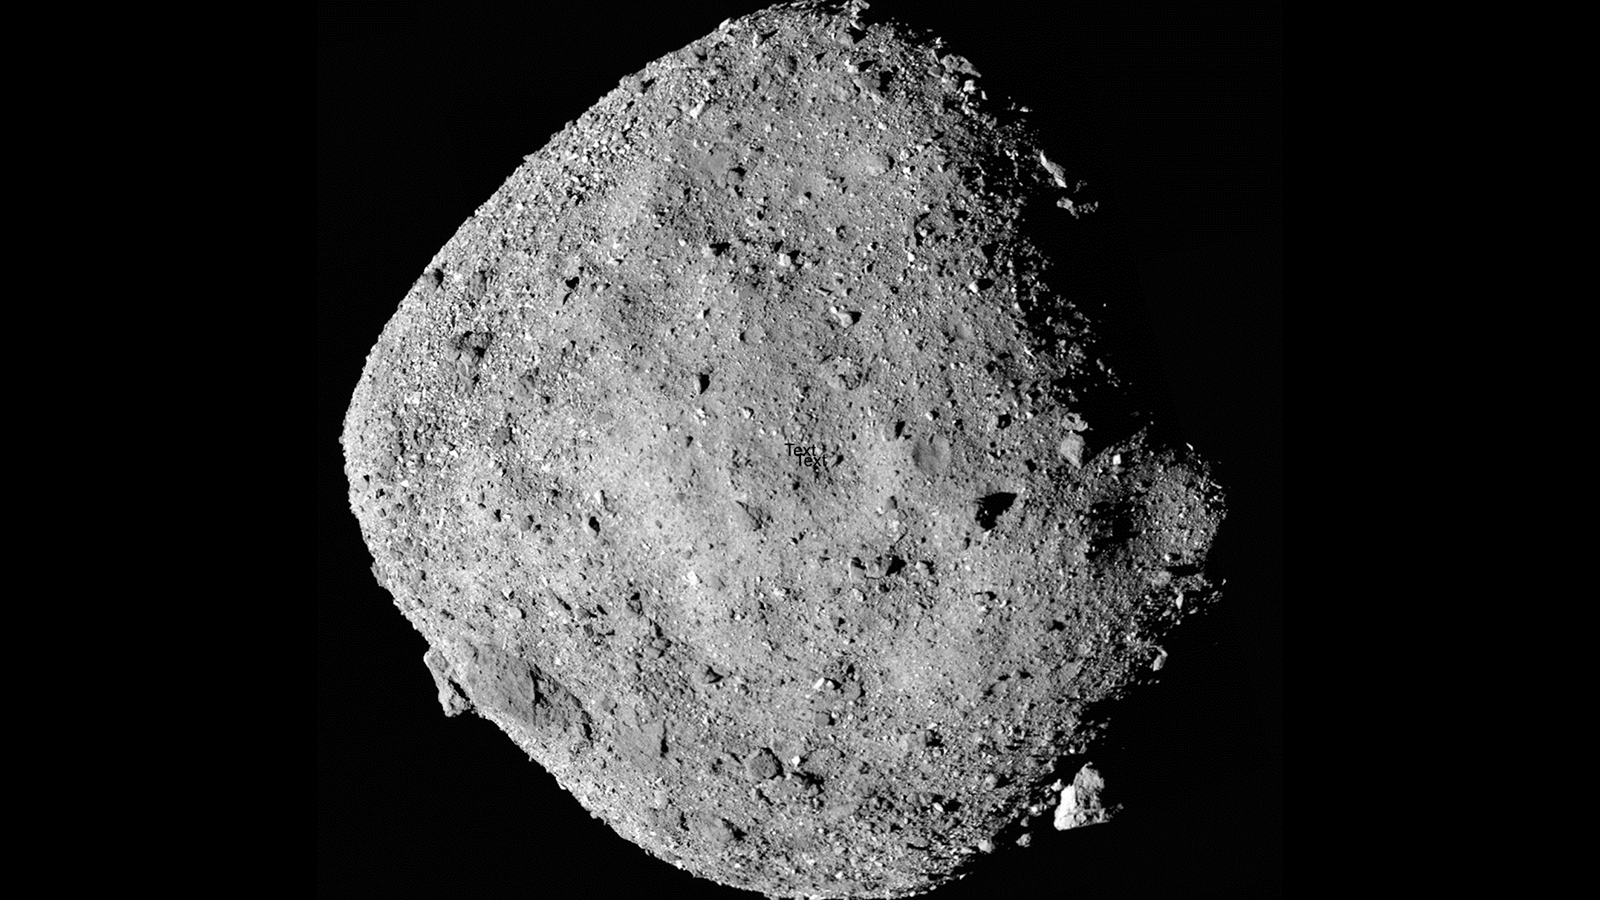 This asteroid is ejecting particles into space. A spacecraft may tell us why